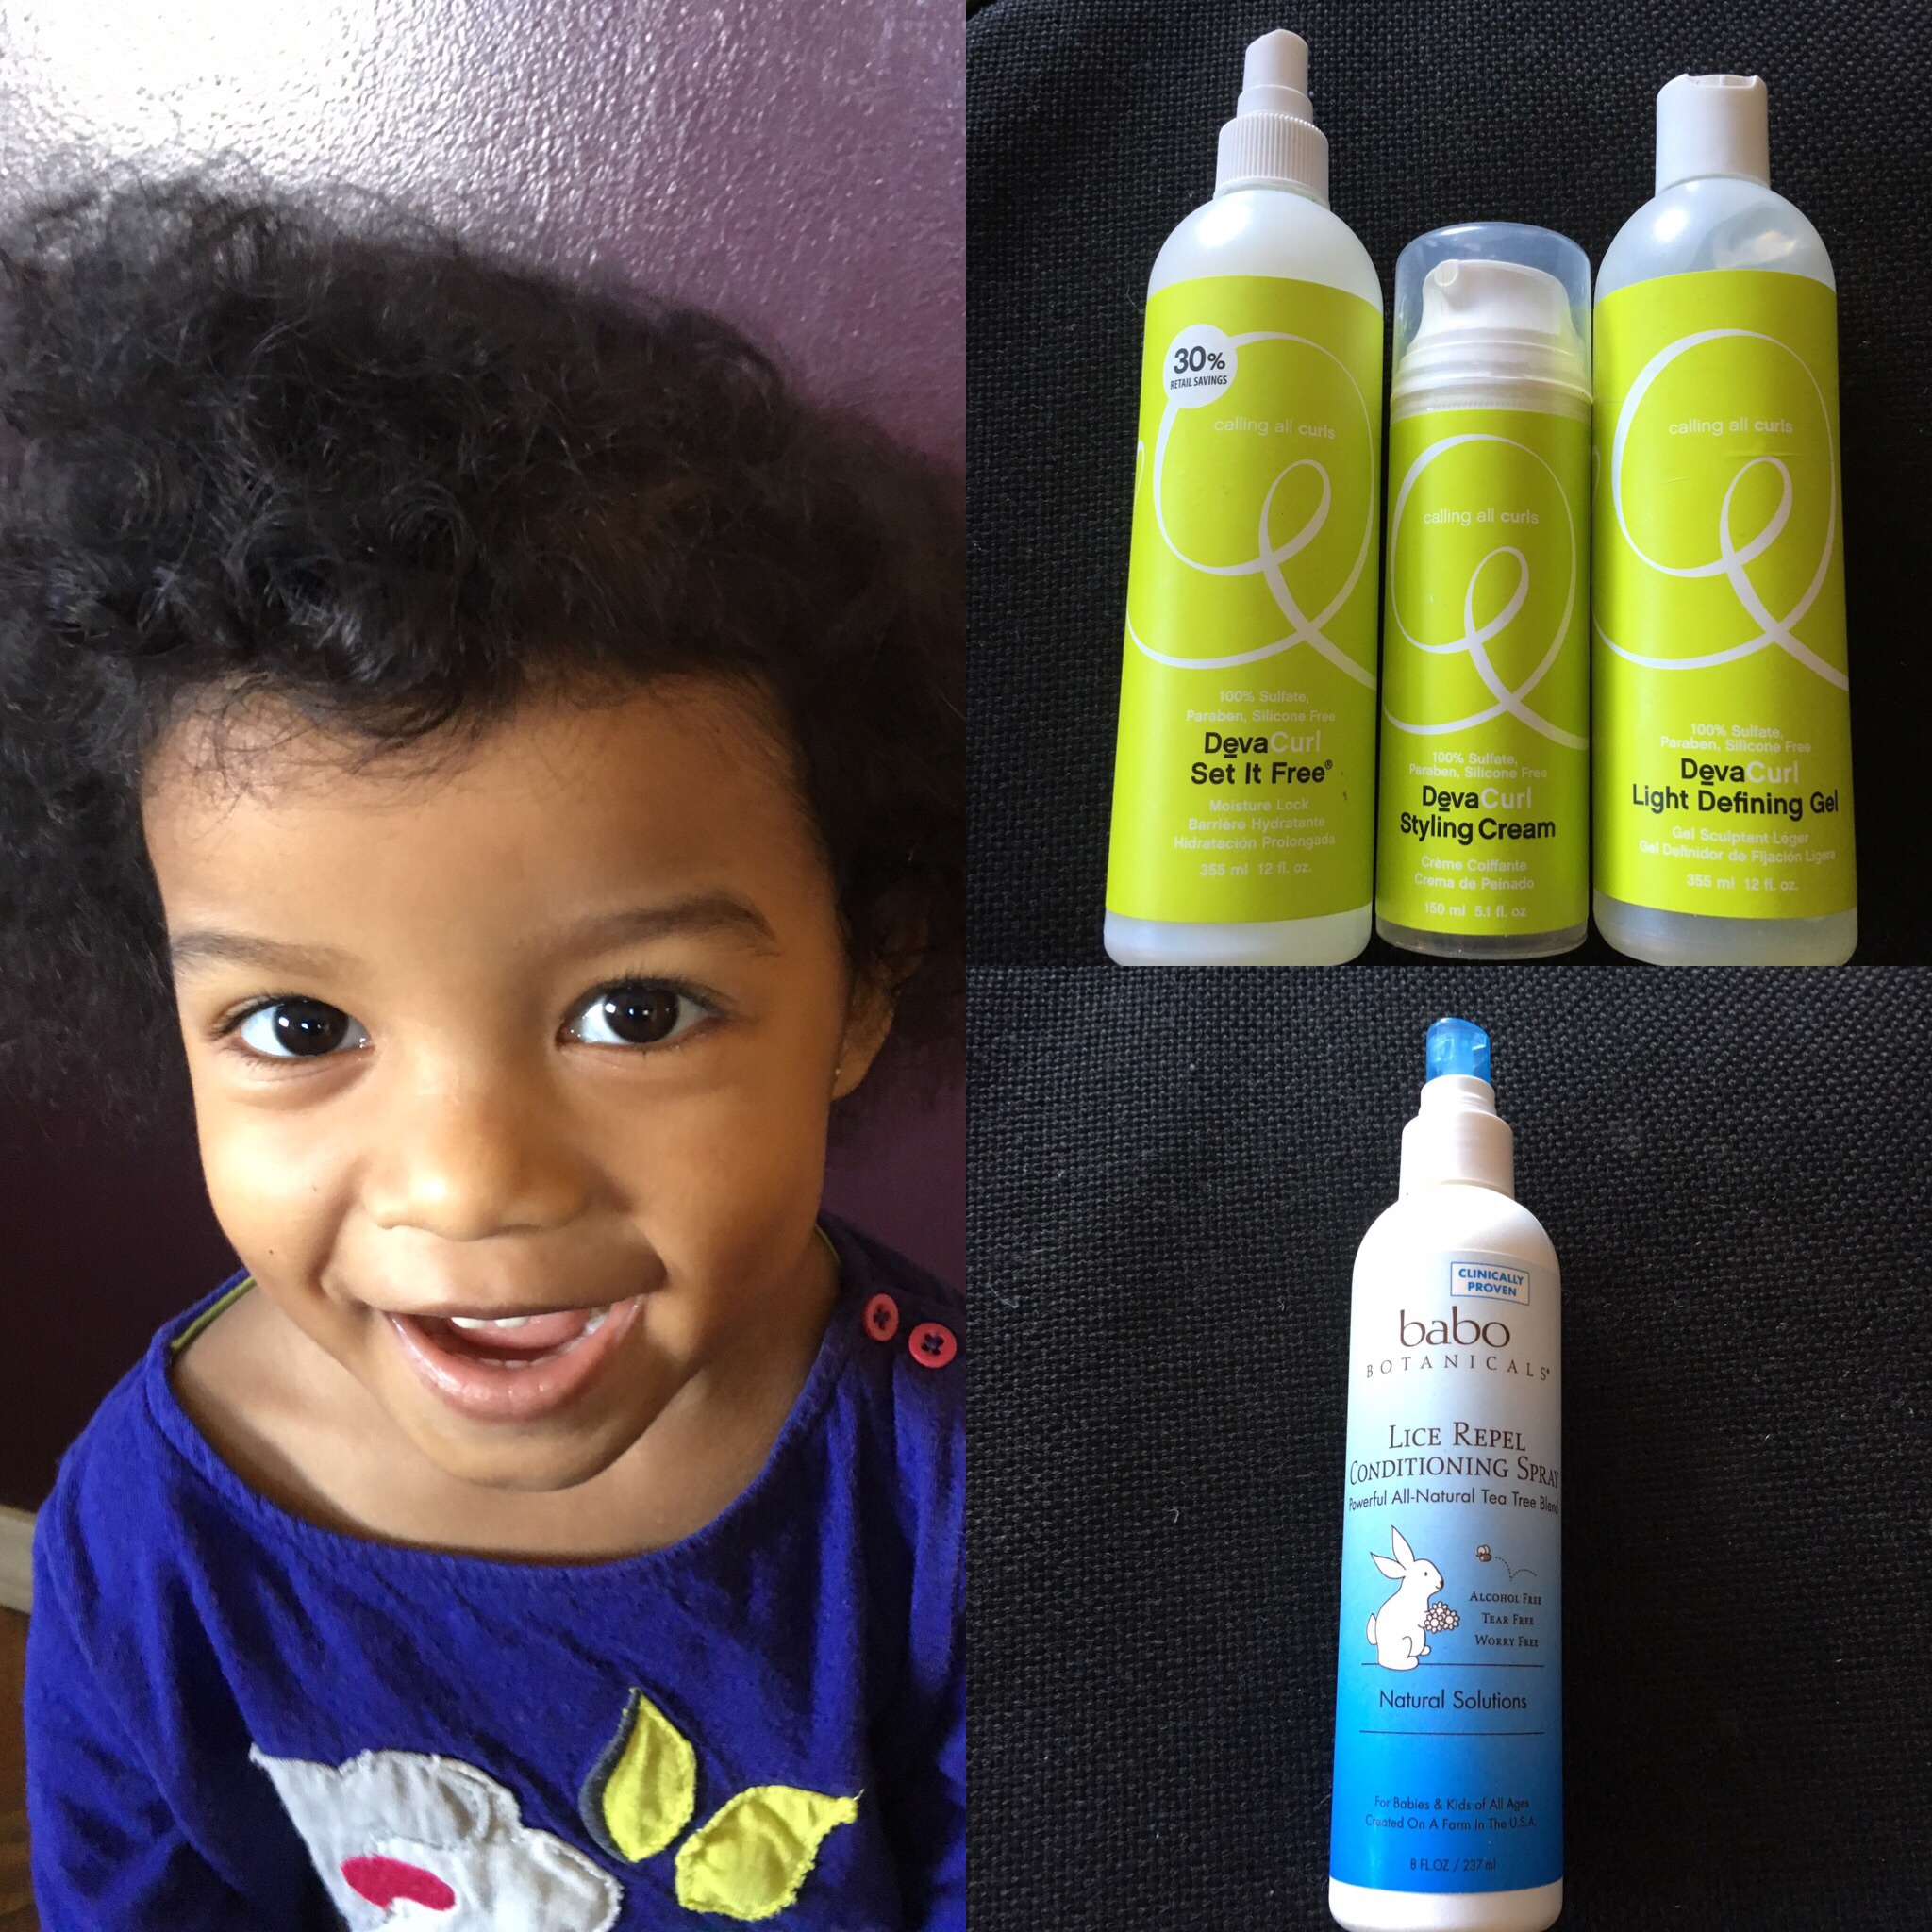 Back to school morning curly hair challenges. Use Deva curl hair care and Babo Botanicals Tea Tree Lice Repel conditioning spray for moisture, hold, and lice prevention.